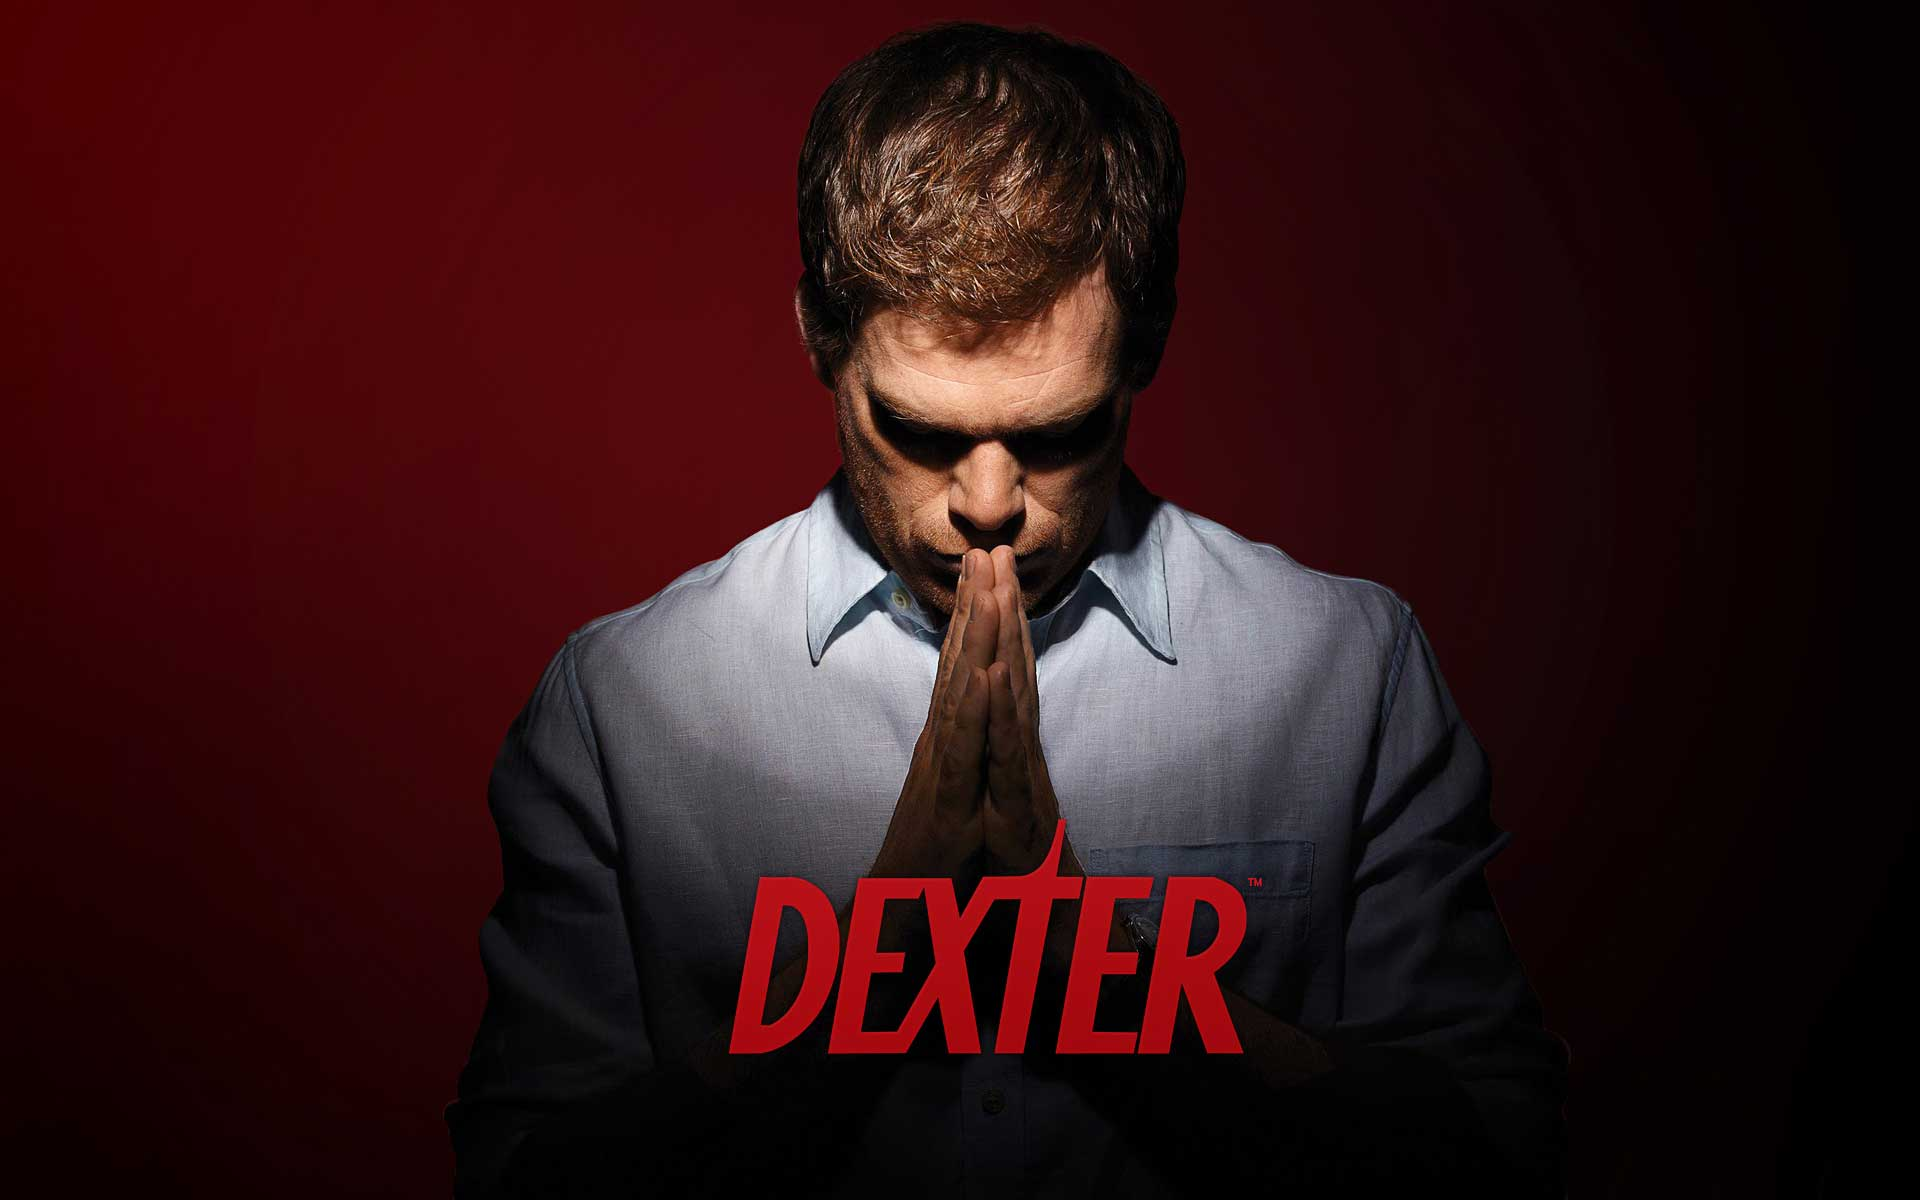 Dexter Wallpaper wallpaper Dexter Wallpaper by Existencee on DeviantArt 1920x1200